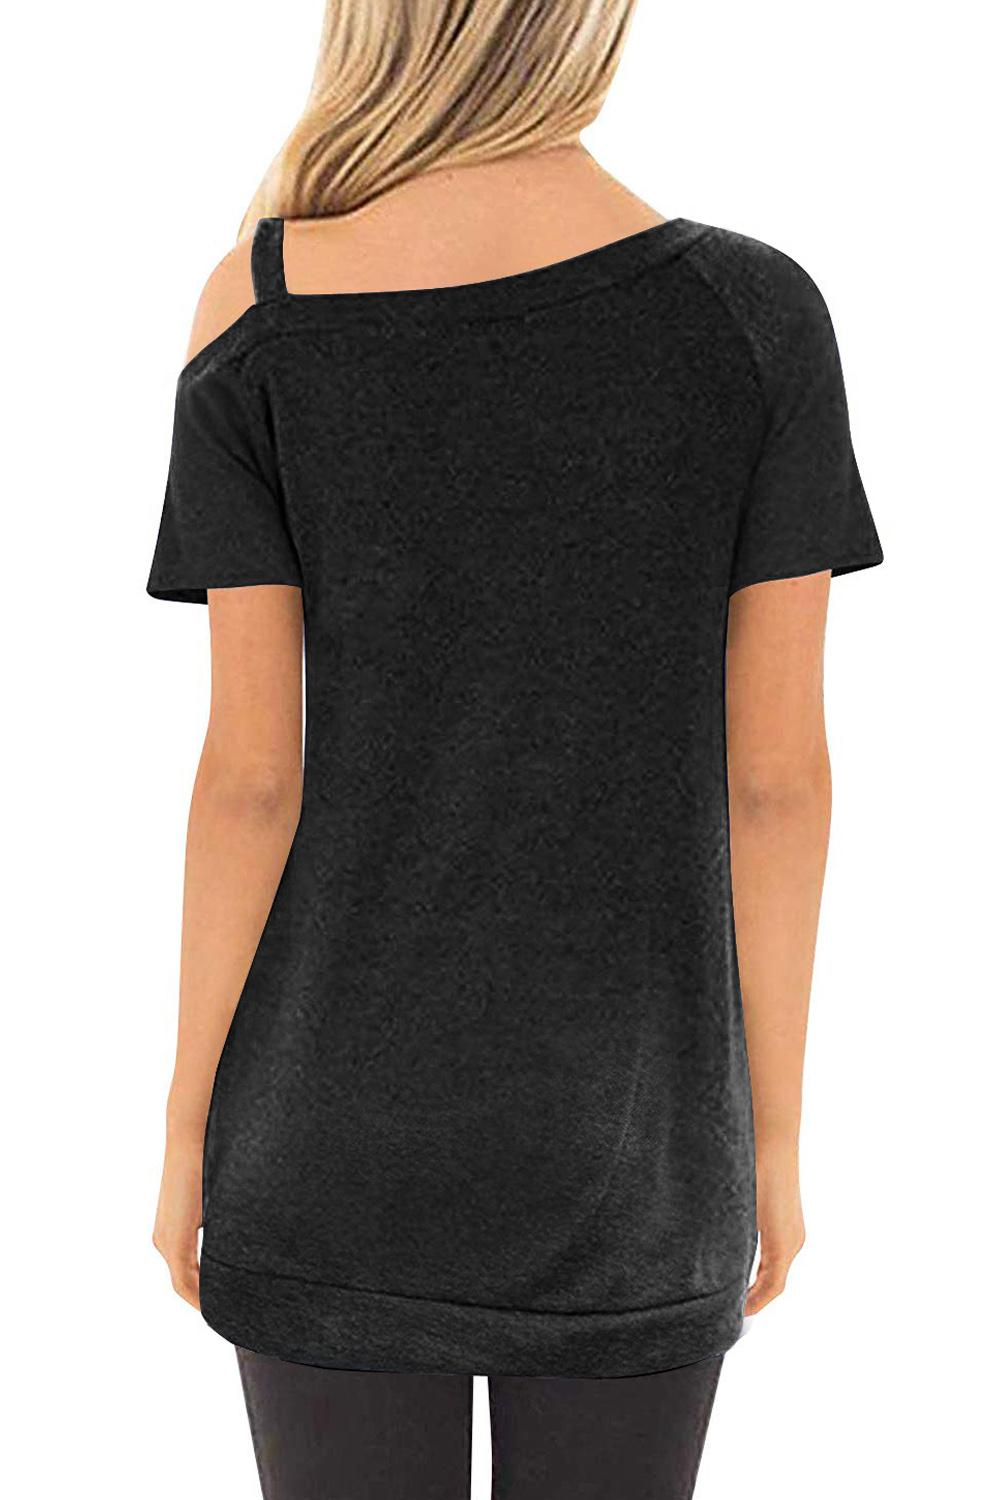 Black Sling Short Sleeve Casual Buttoned Top